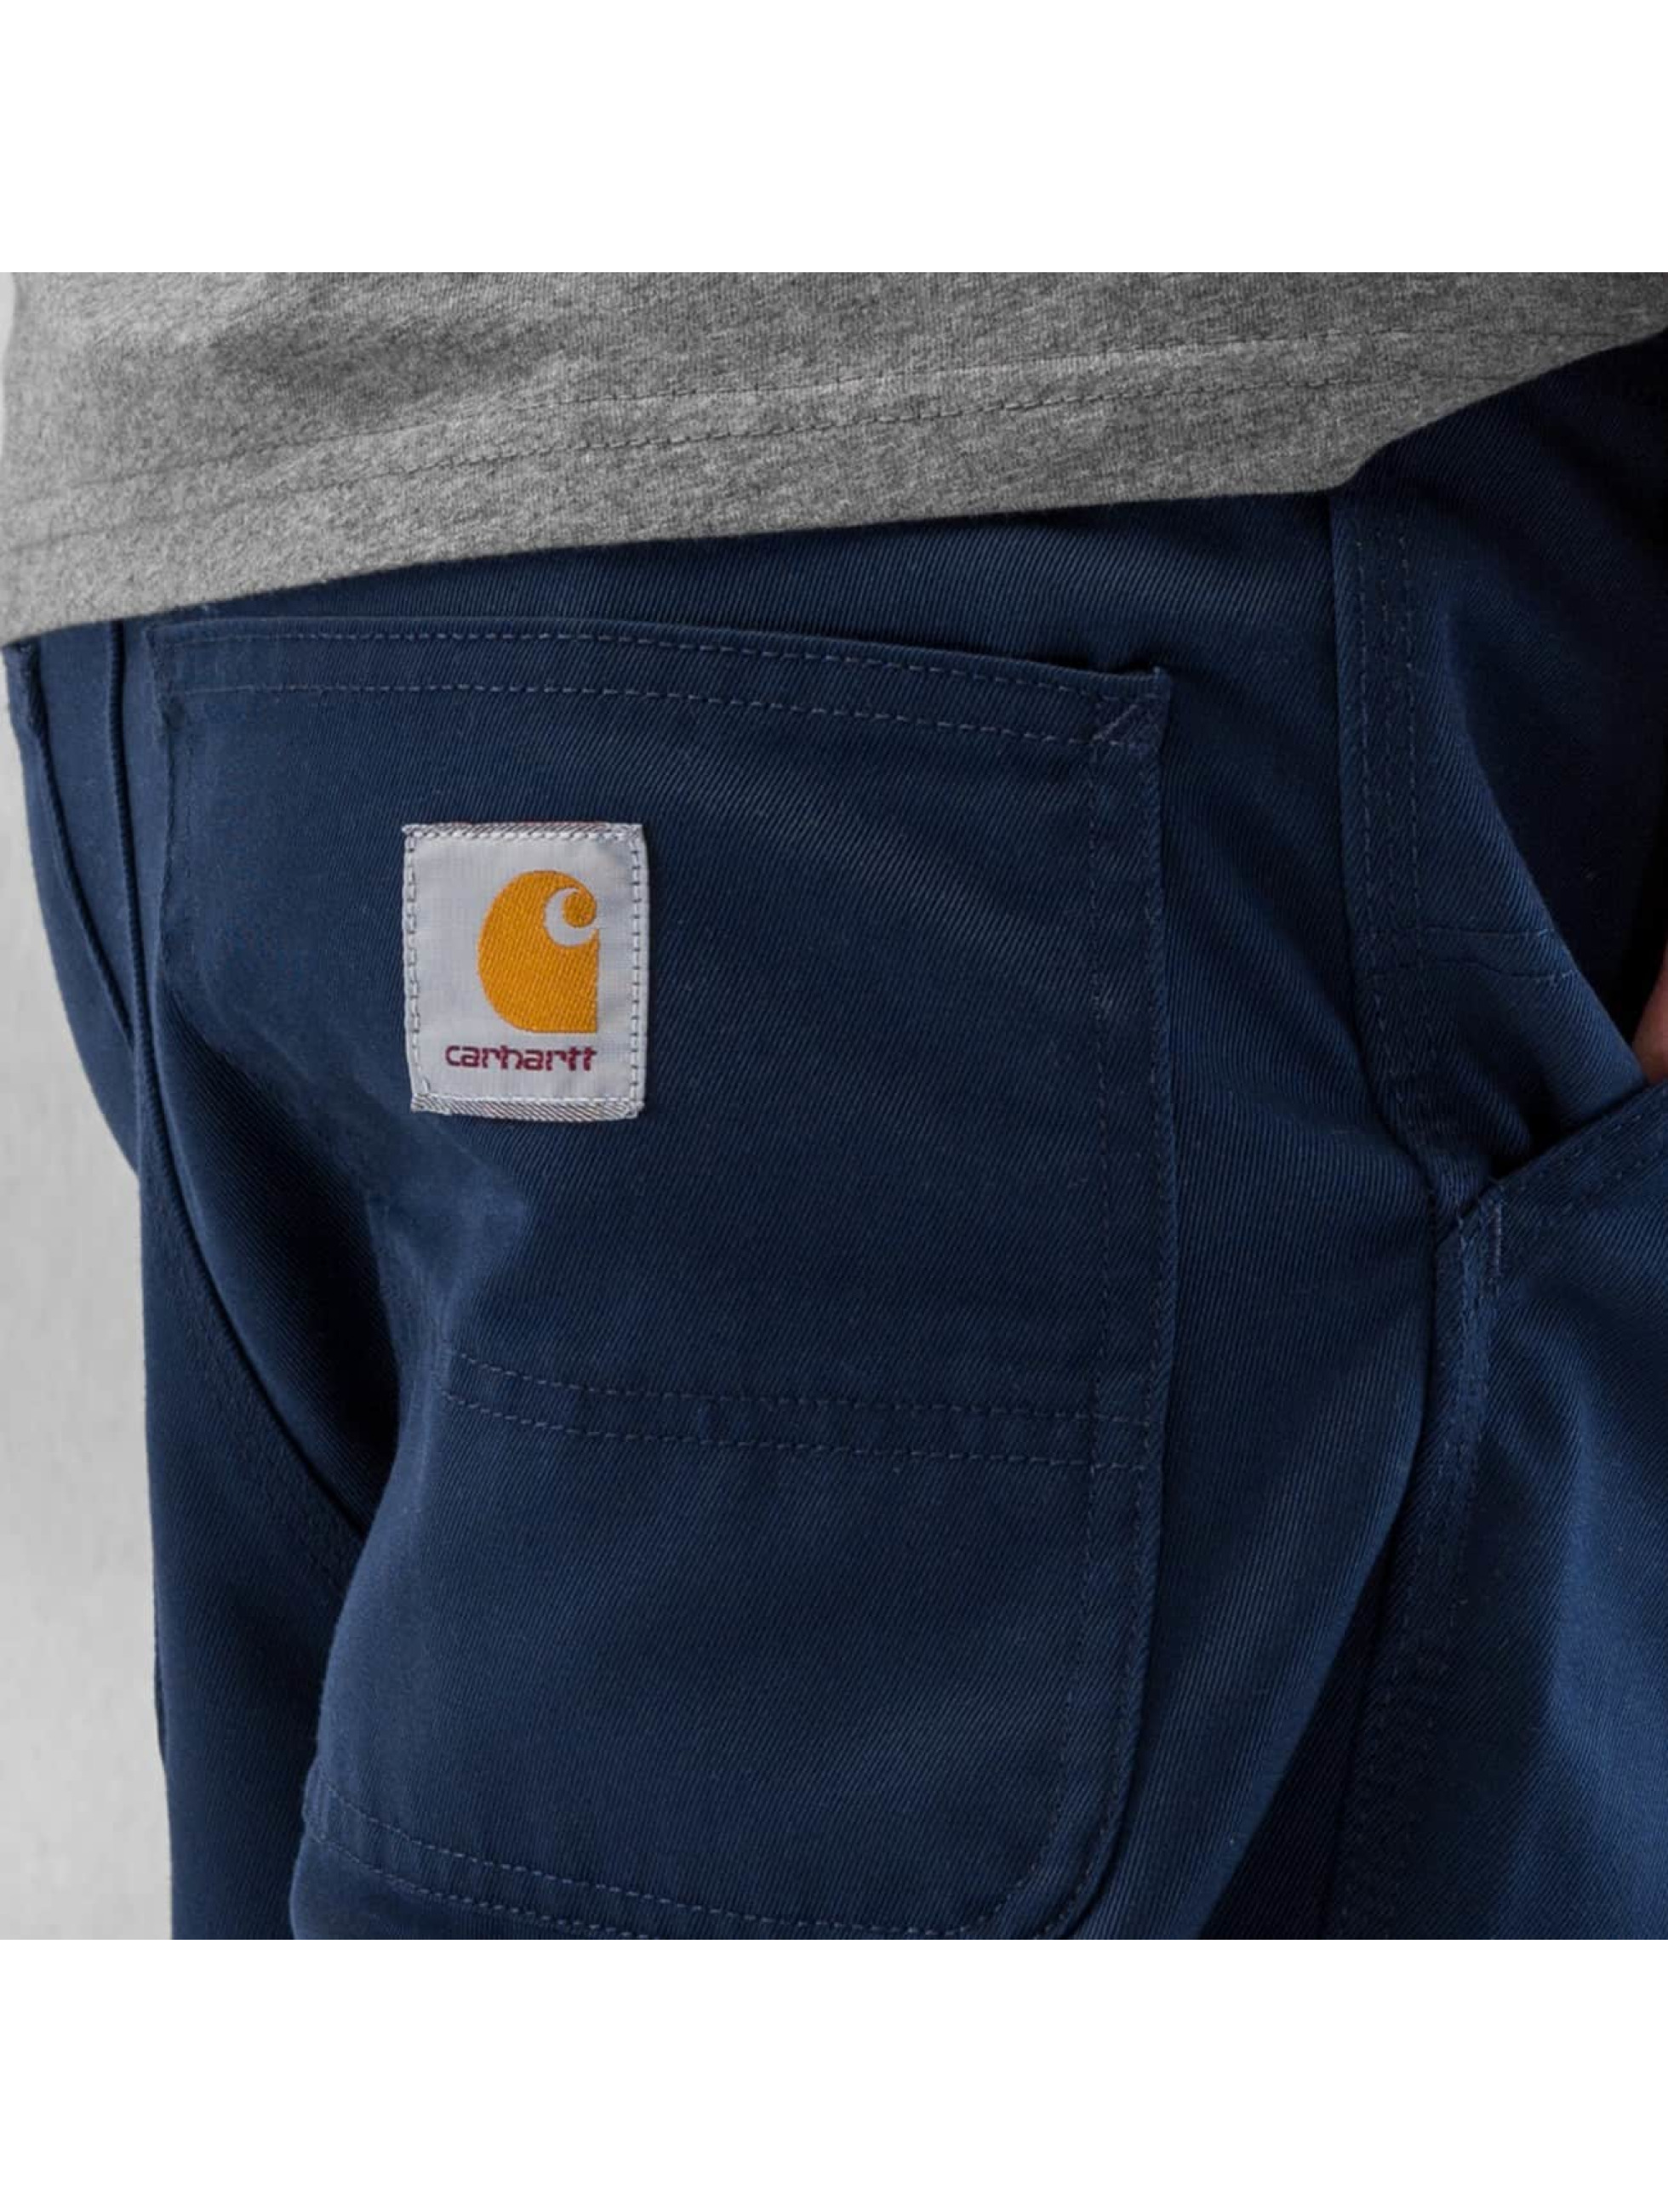 Carhartt WIP Loose Fit Jeans Denison Twill Simple blau